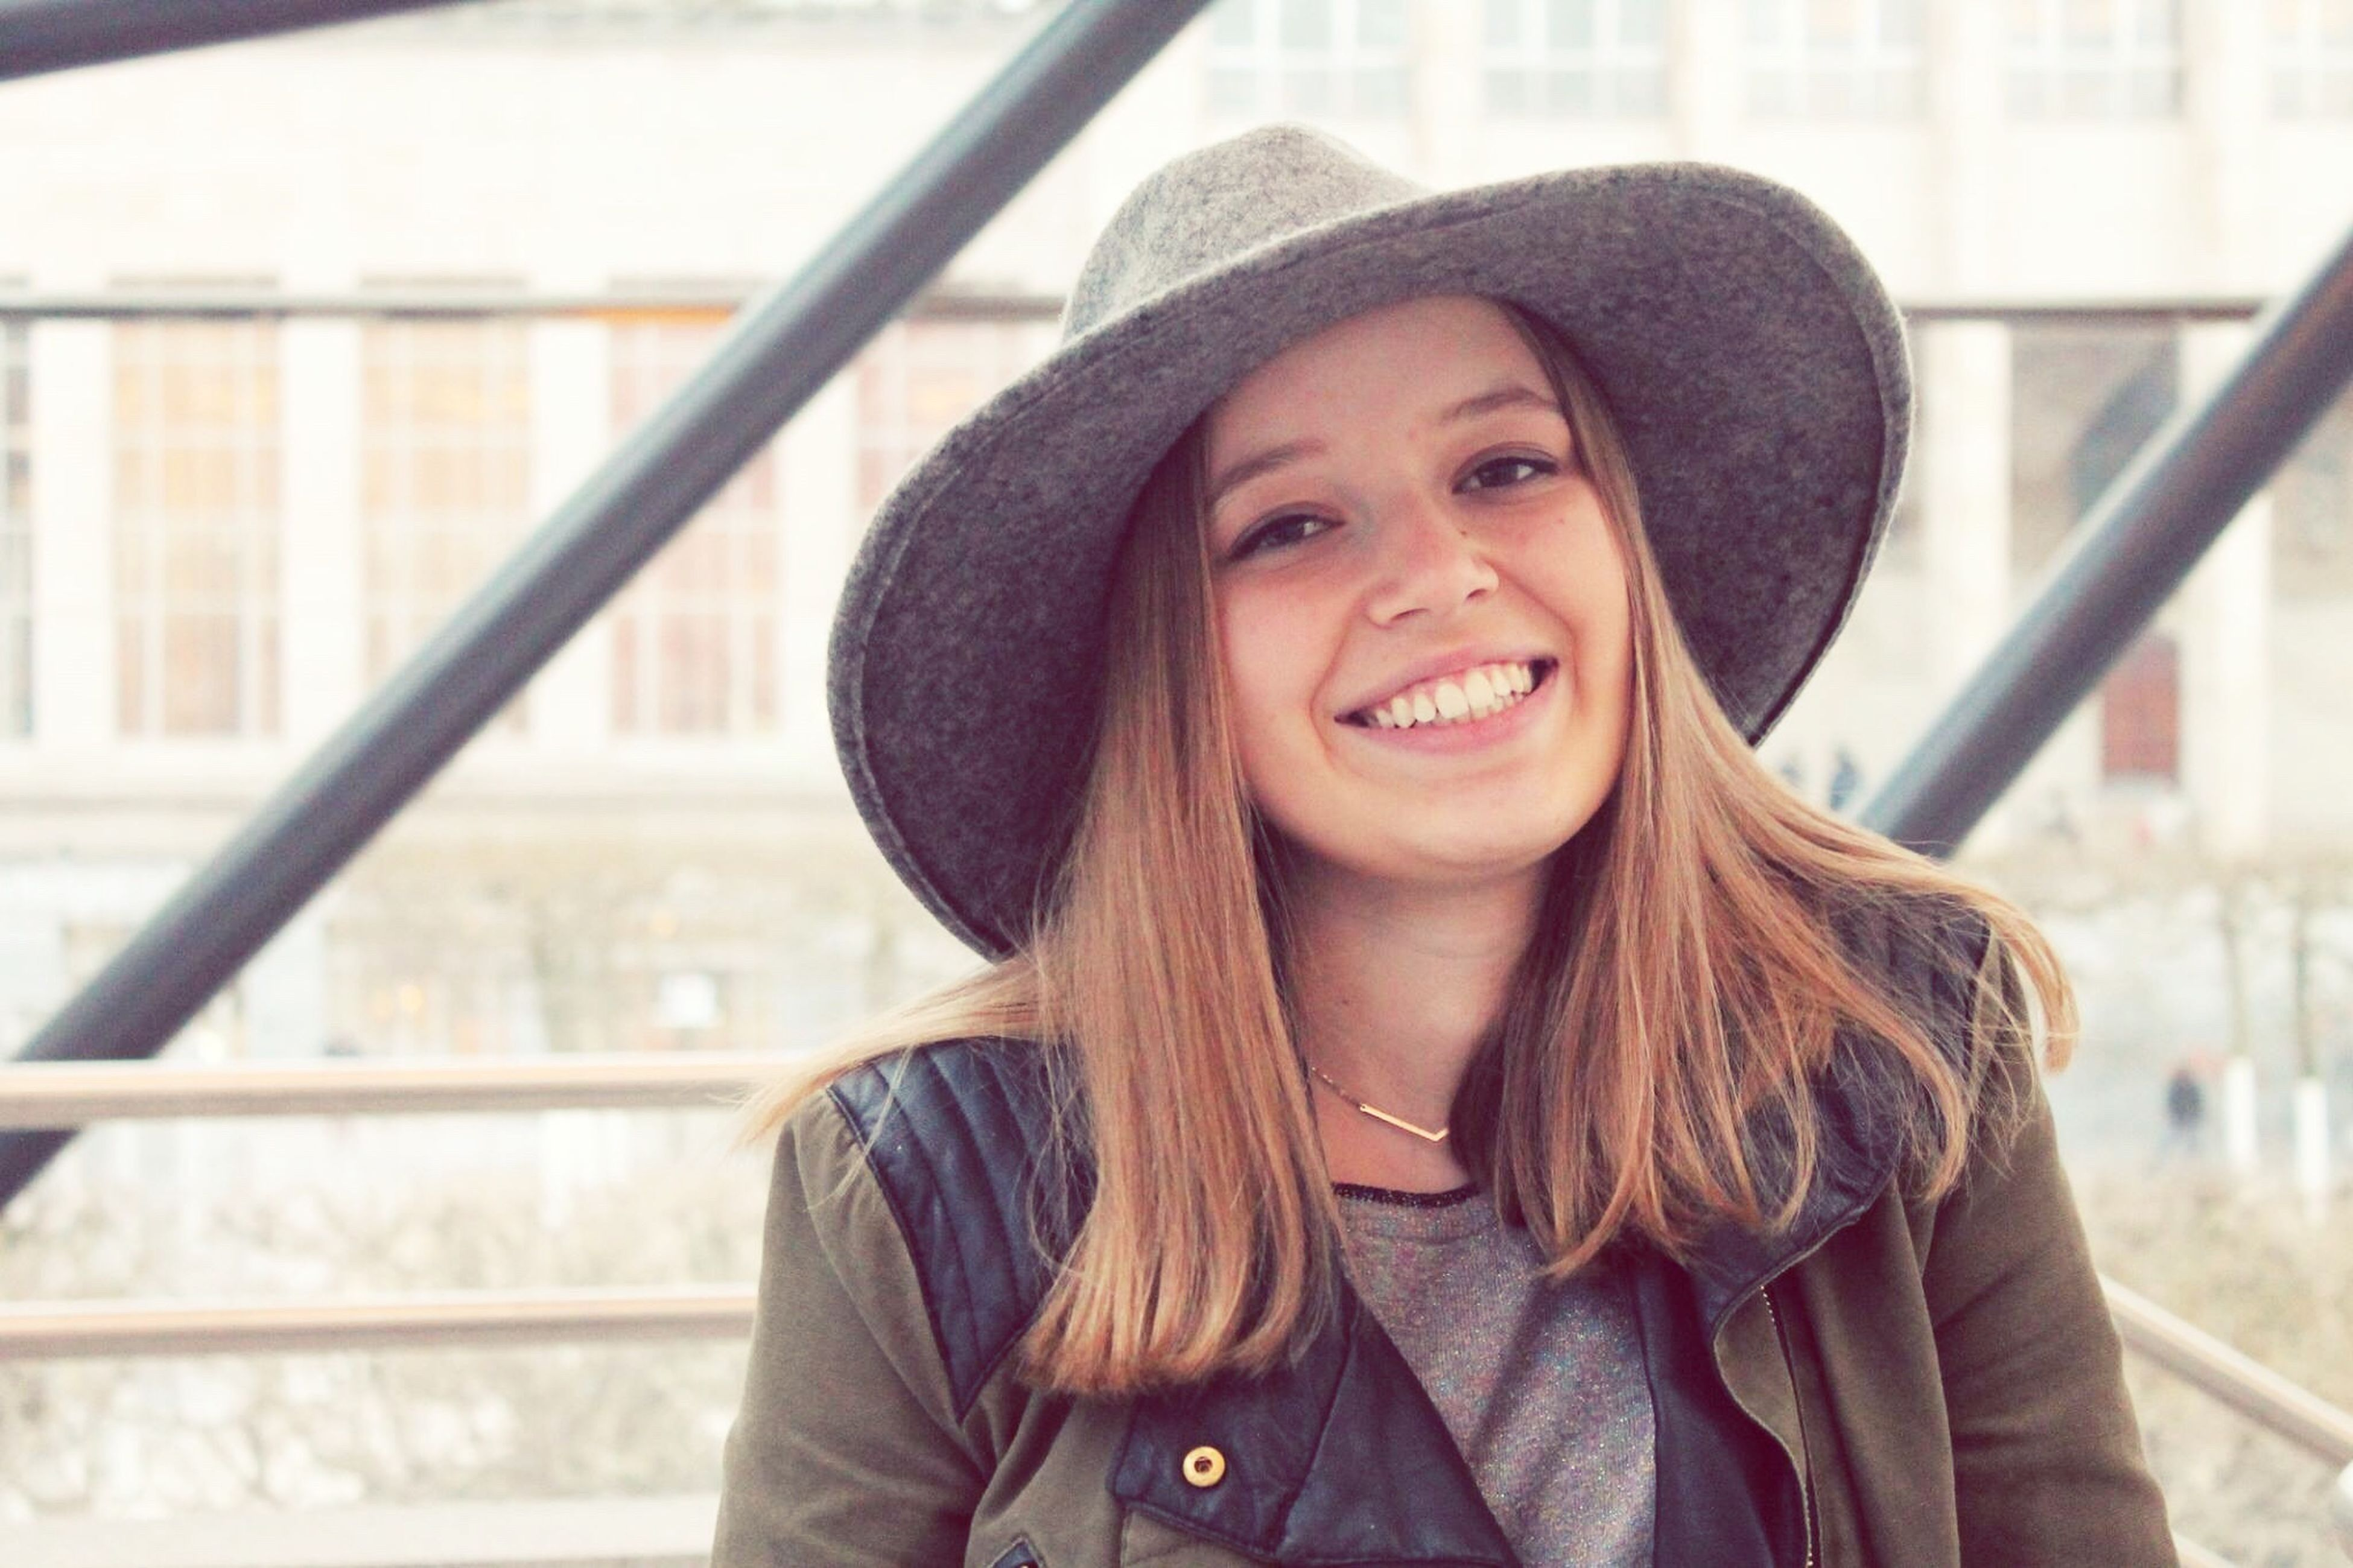 young adult, portrait, person, looking at camera, lifestyles, smiling, front view, young women, casual clothing, leisure activity, happiness, long hair, focus on foreground, toothy smile, standing, waist up, headshot